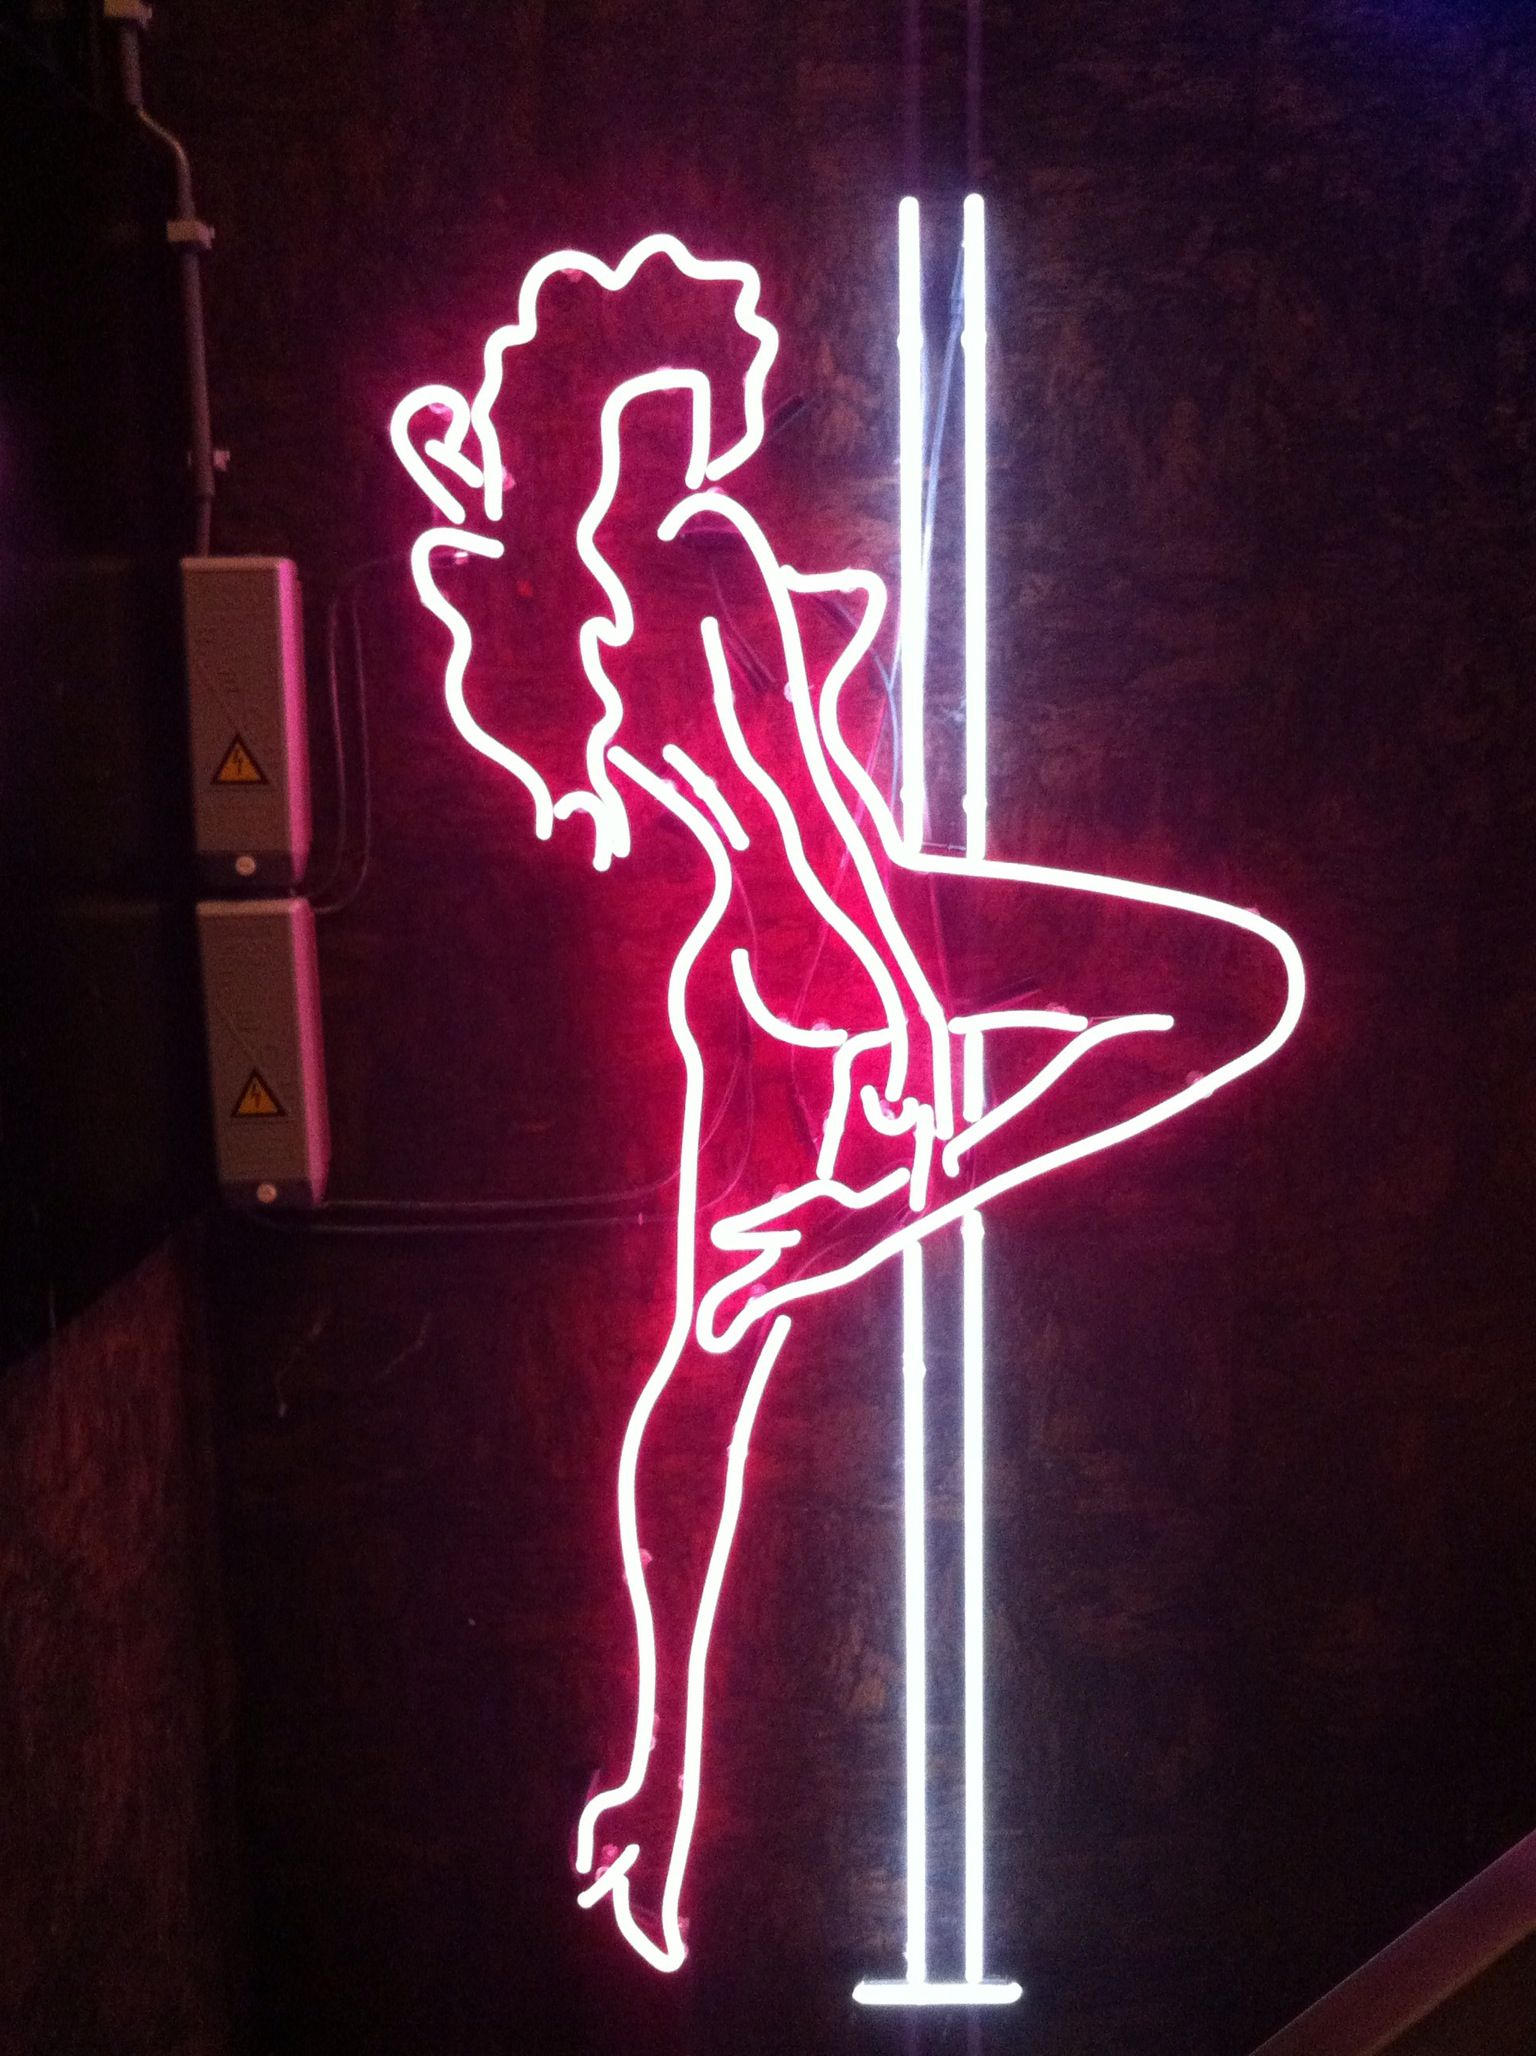 Neon Bedroom Neon Stripper By Nd Made For The Jimmy Woo Amsterdam 11 2012 Www